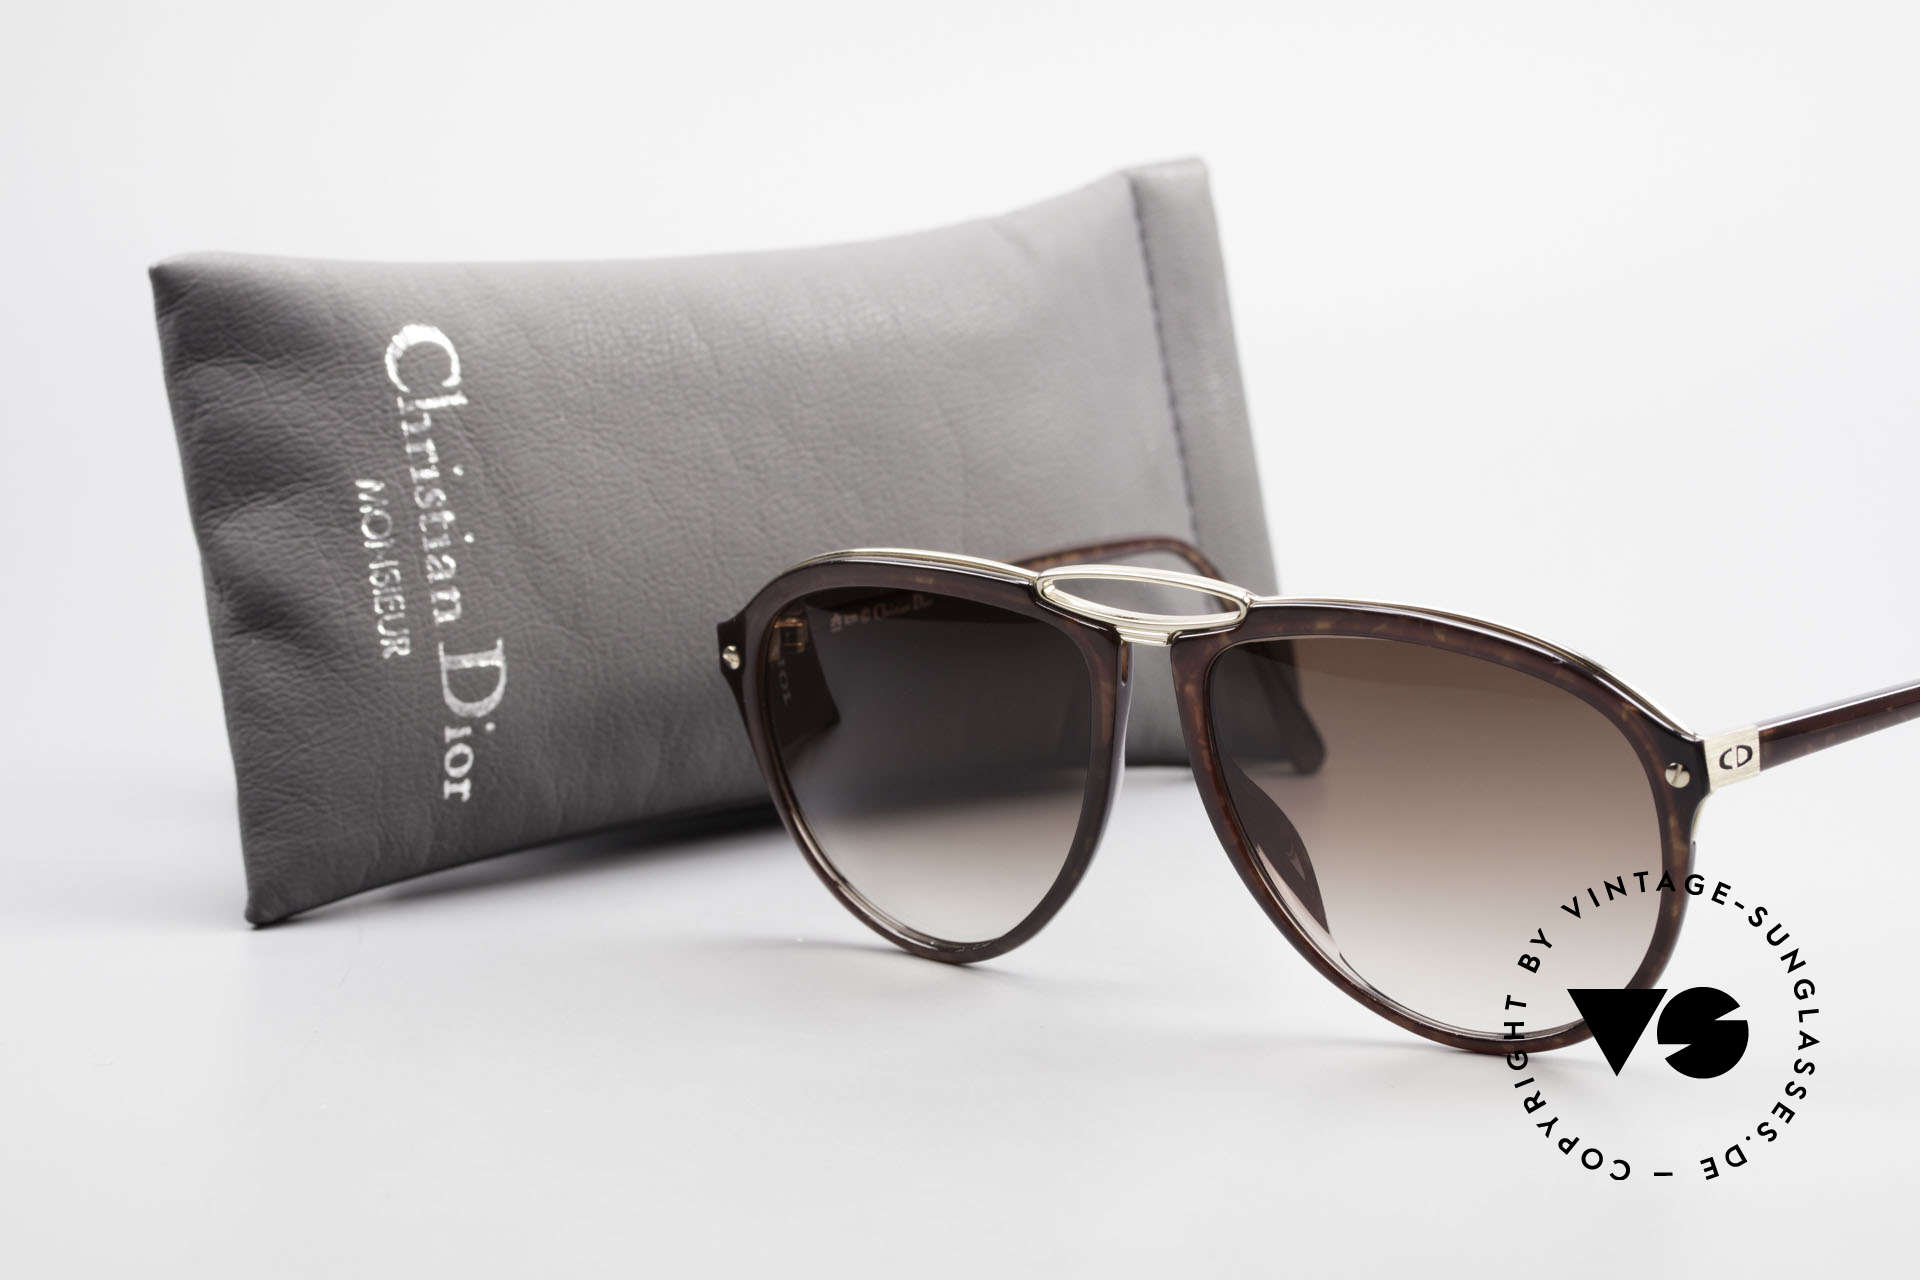 Christian Dior 2523 True 80's No Retro Sunglasses, NO RETRO specs, but a rare old original from 1989!, Made for Men